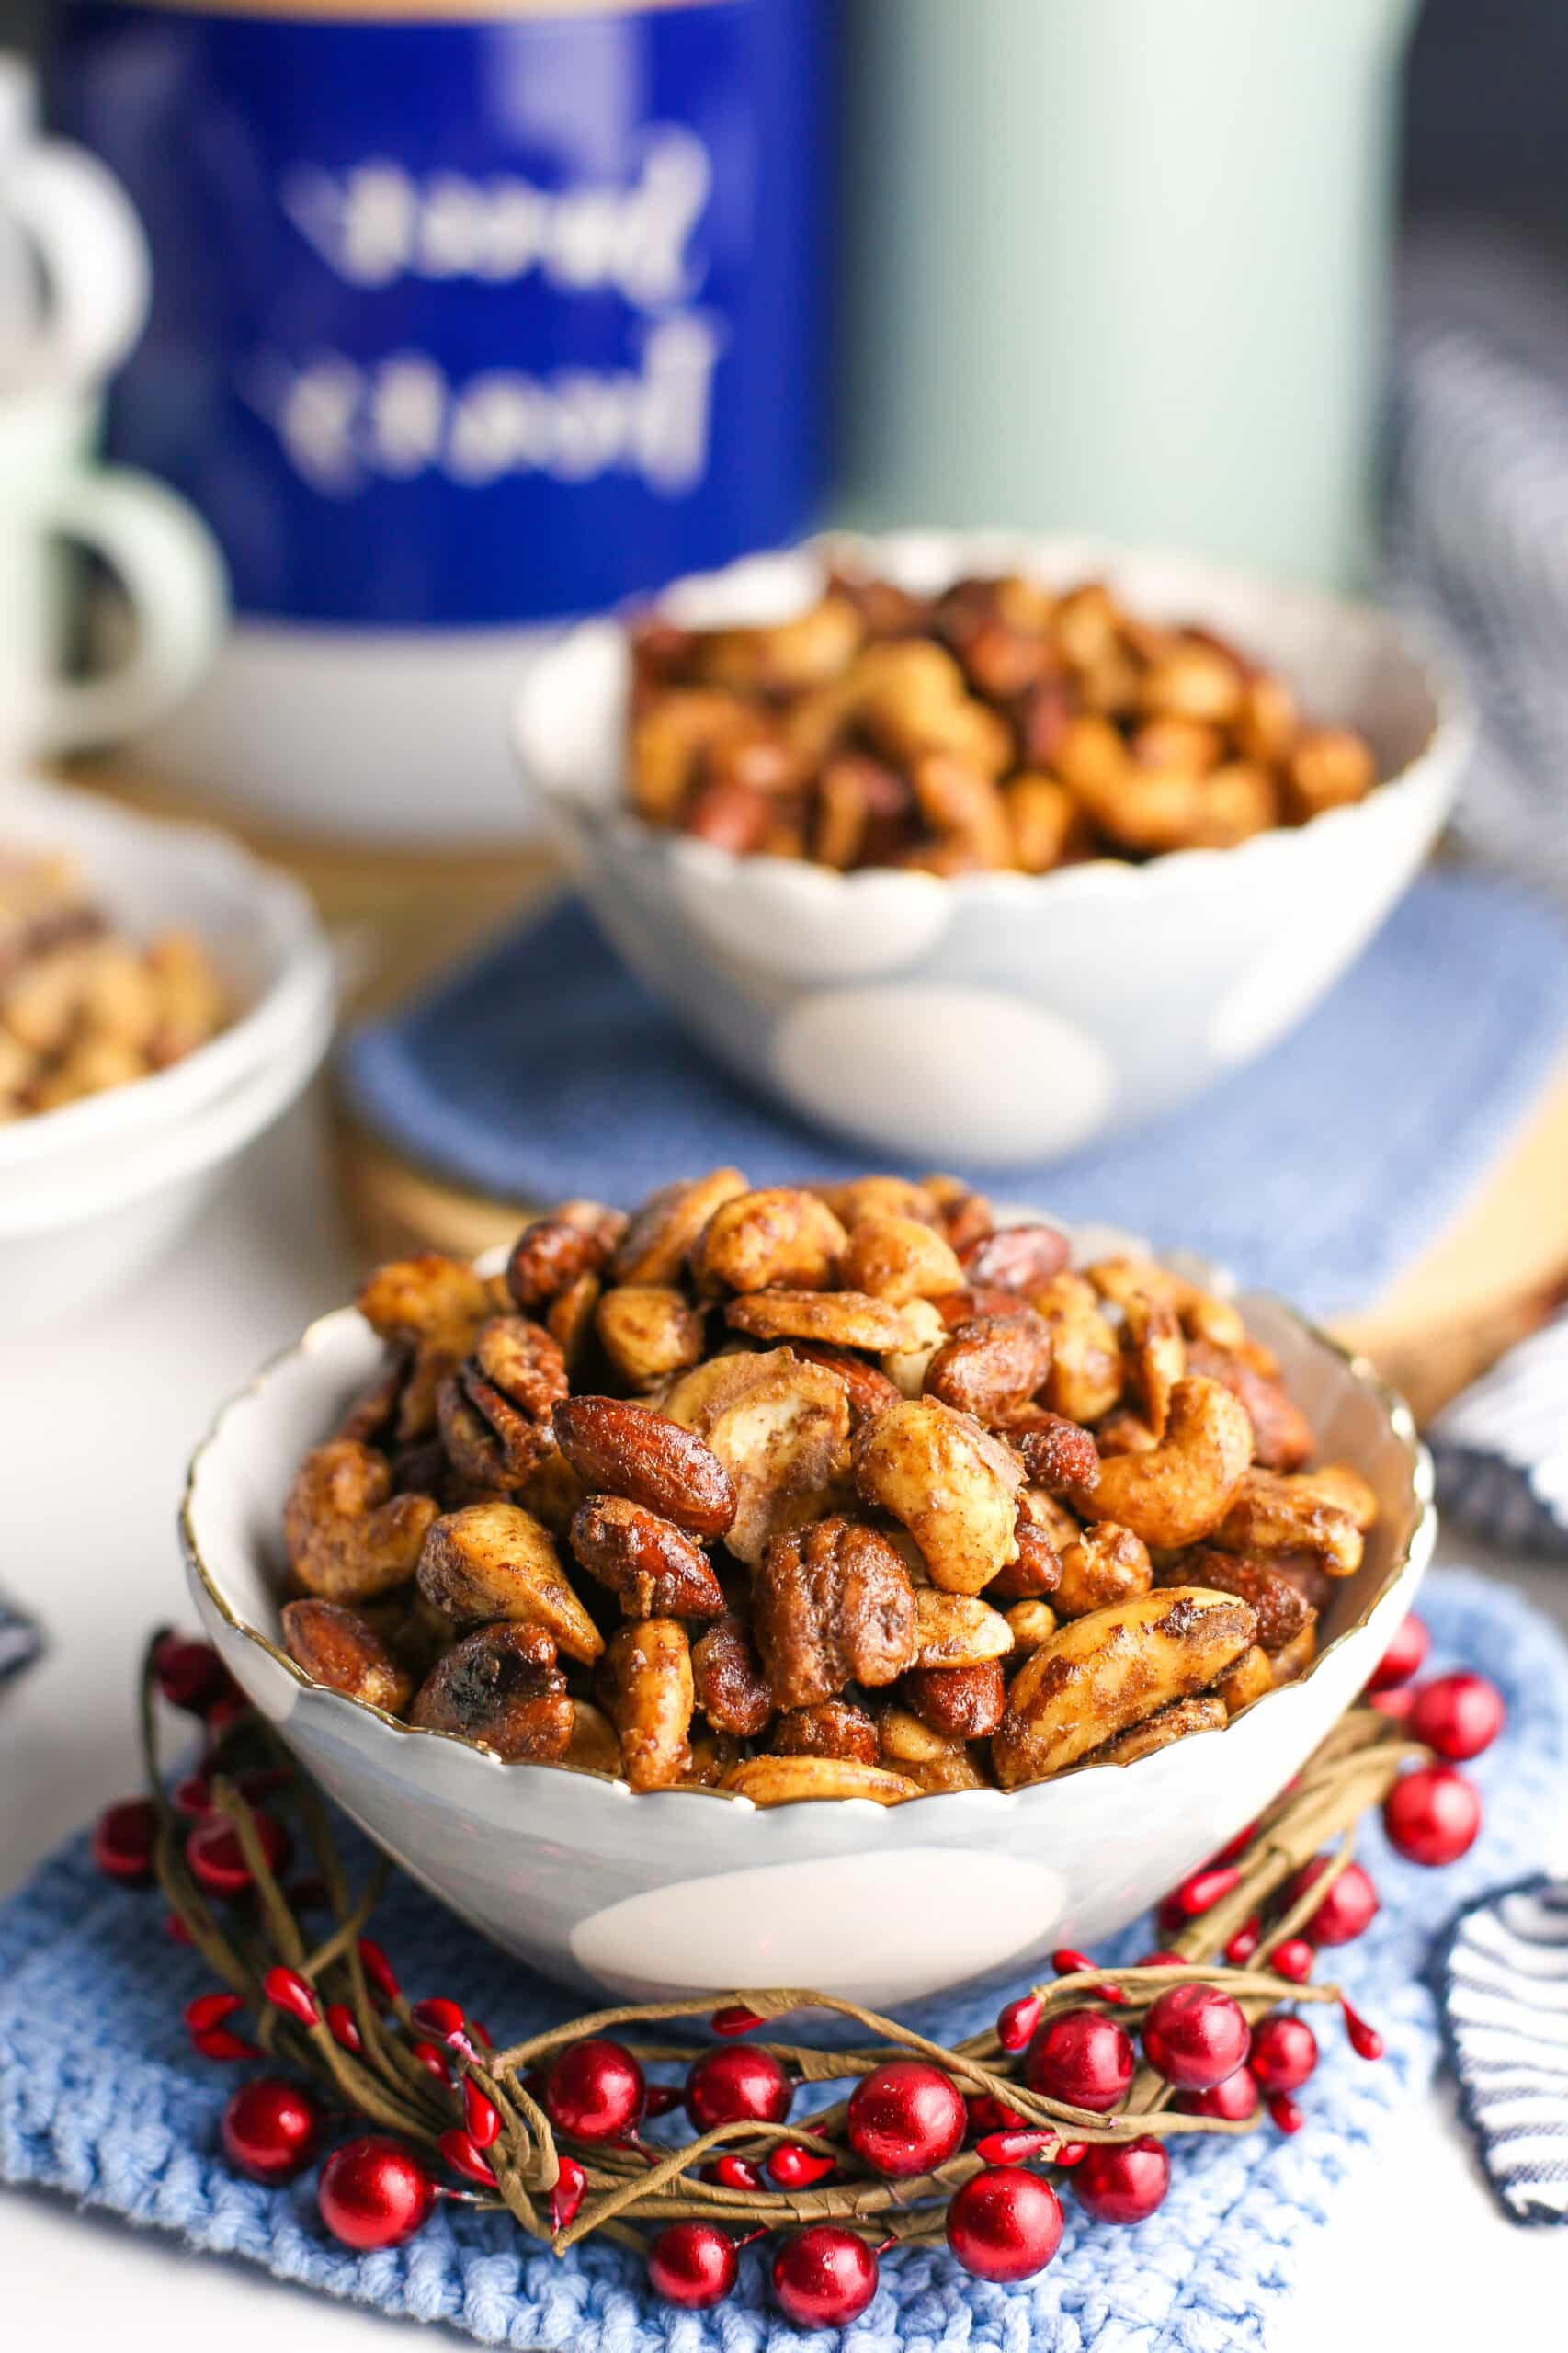 Cinnamon sugar mixed nuts in two white and blue bowls.